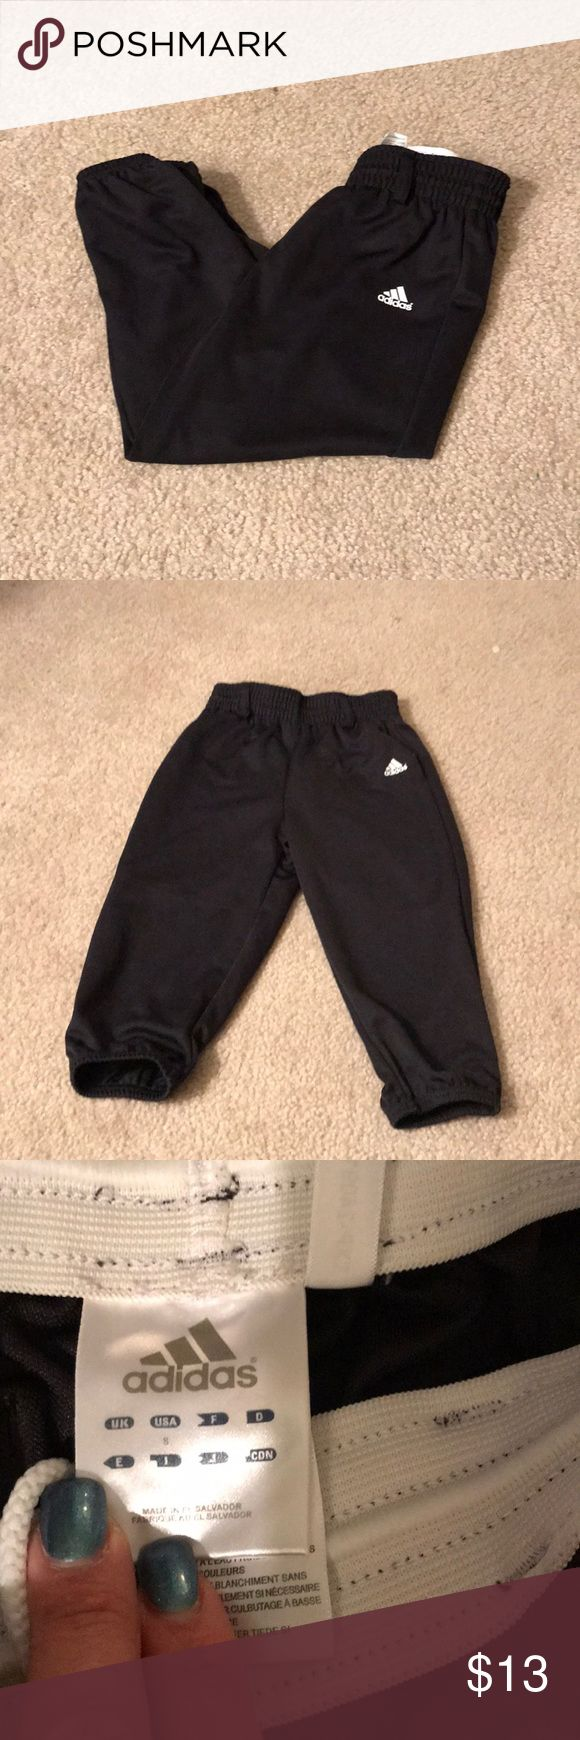 Adidas baseball Pants Cute adidas baseball pants , size small for little kids. Like new, perfect condition. Feel free to make me an offer 😊 adidas Bottoms Sweatpants & Joggers